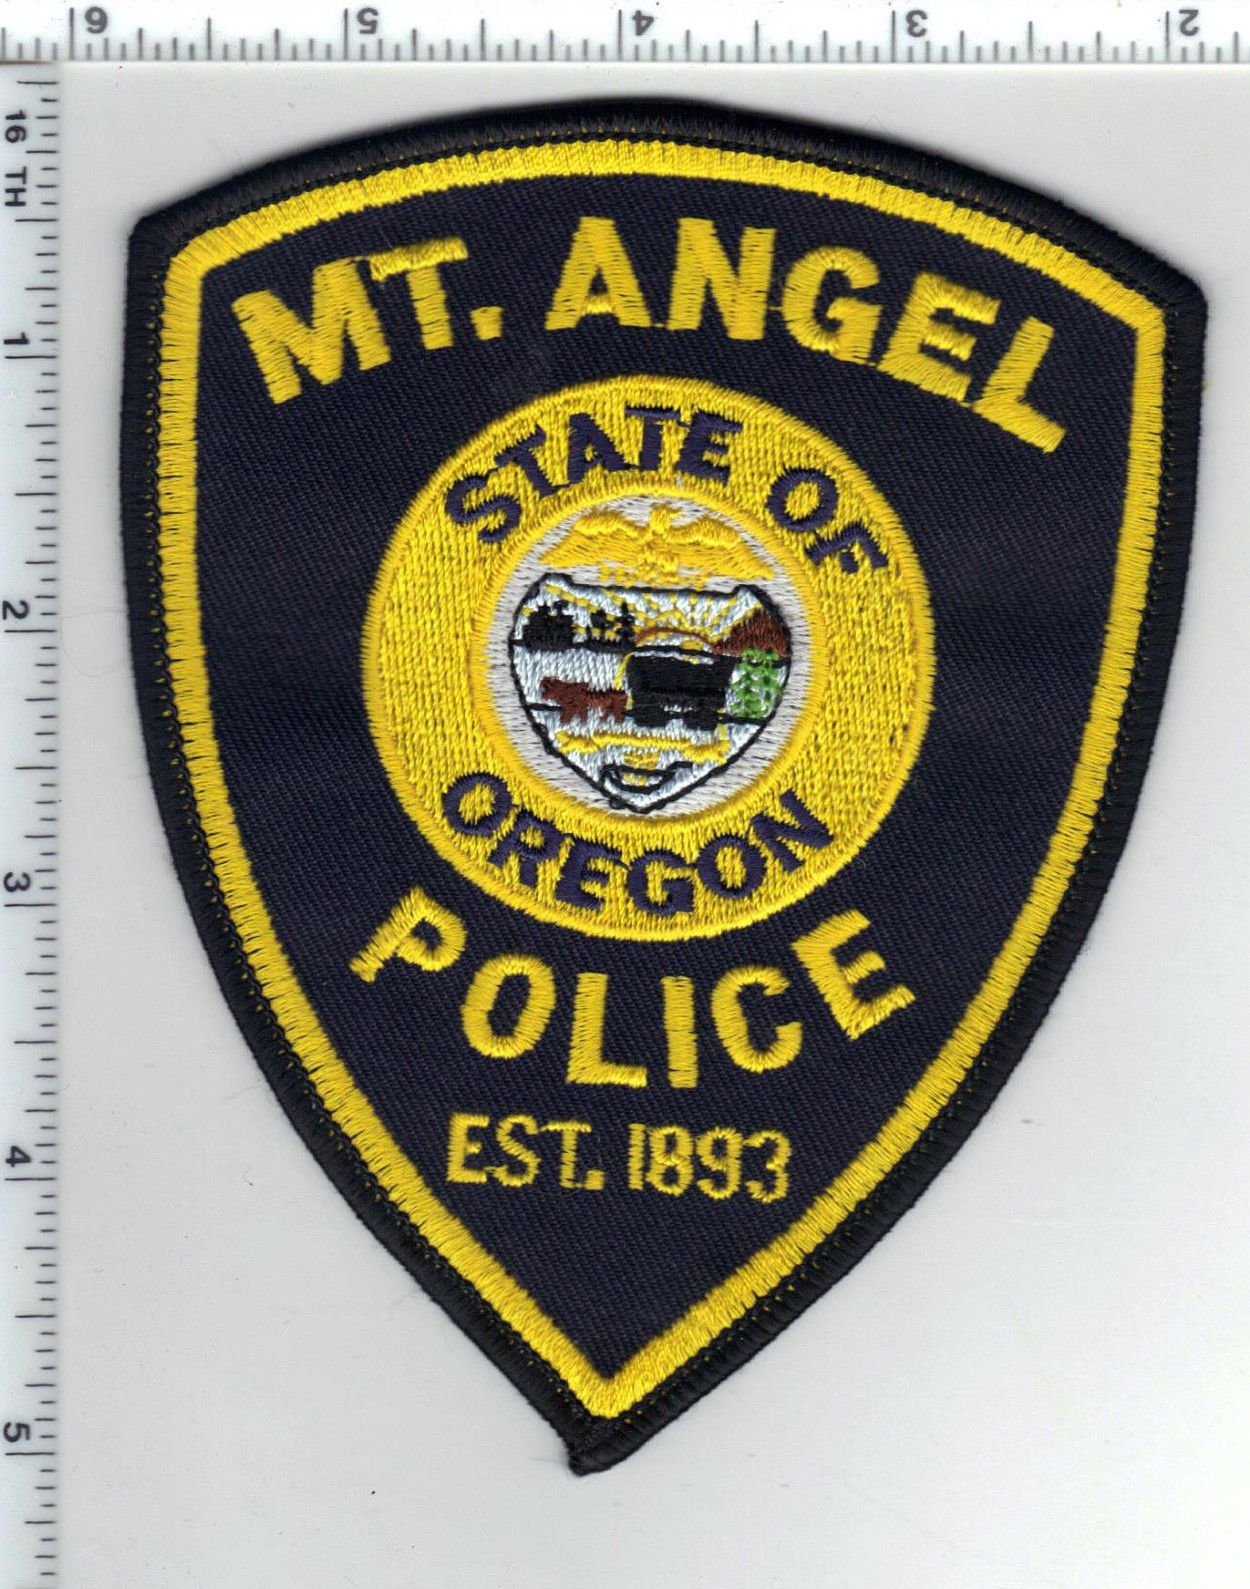 Mt. Angel Police (Oregon) Shoulder Patch - new from the 1980's • $24.95 - PicClick